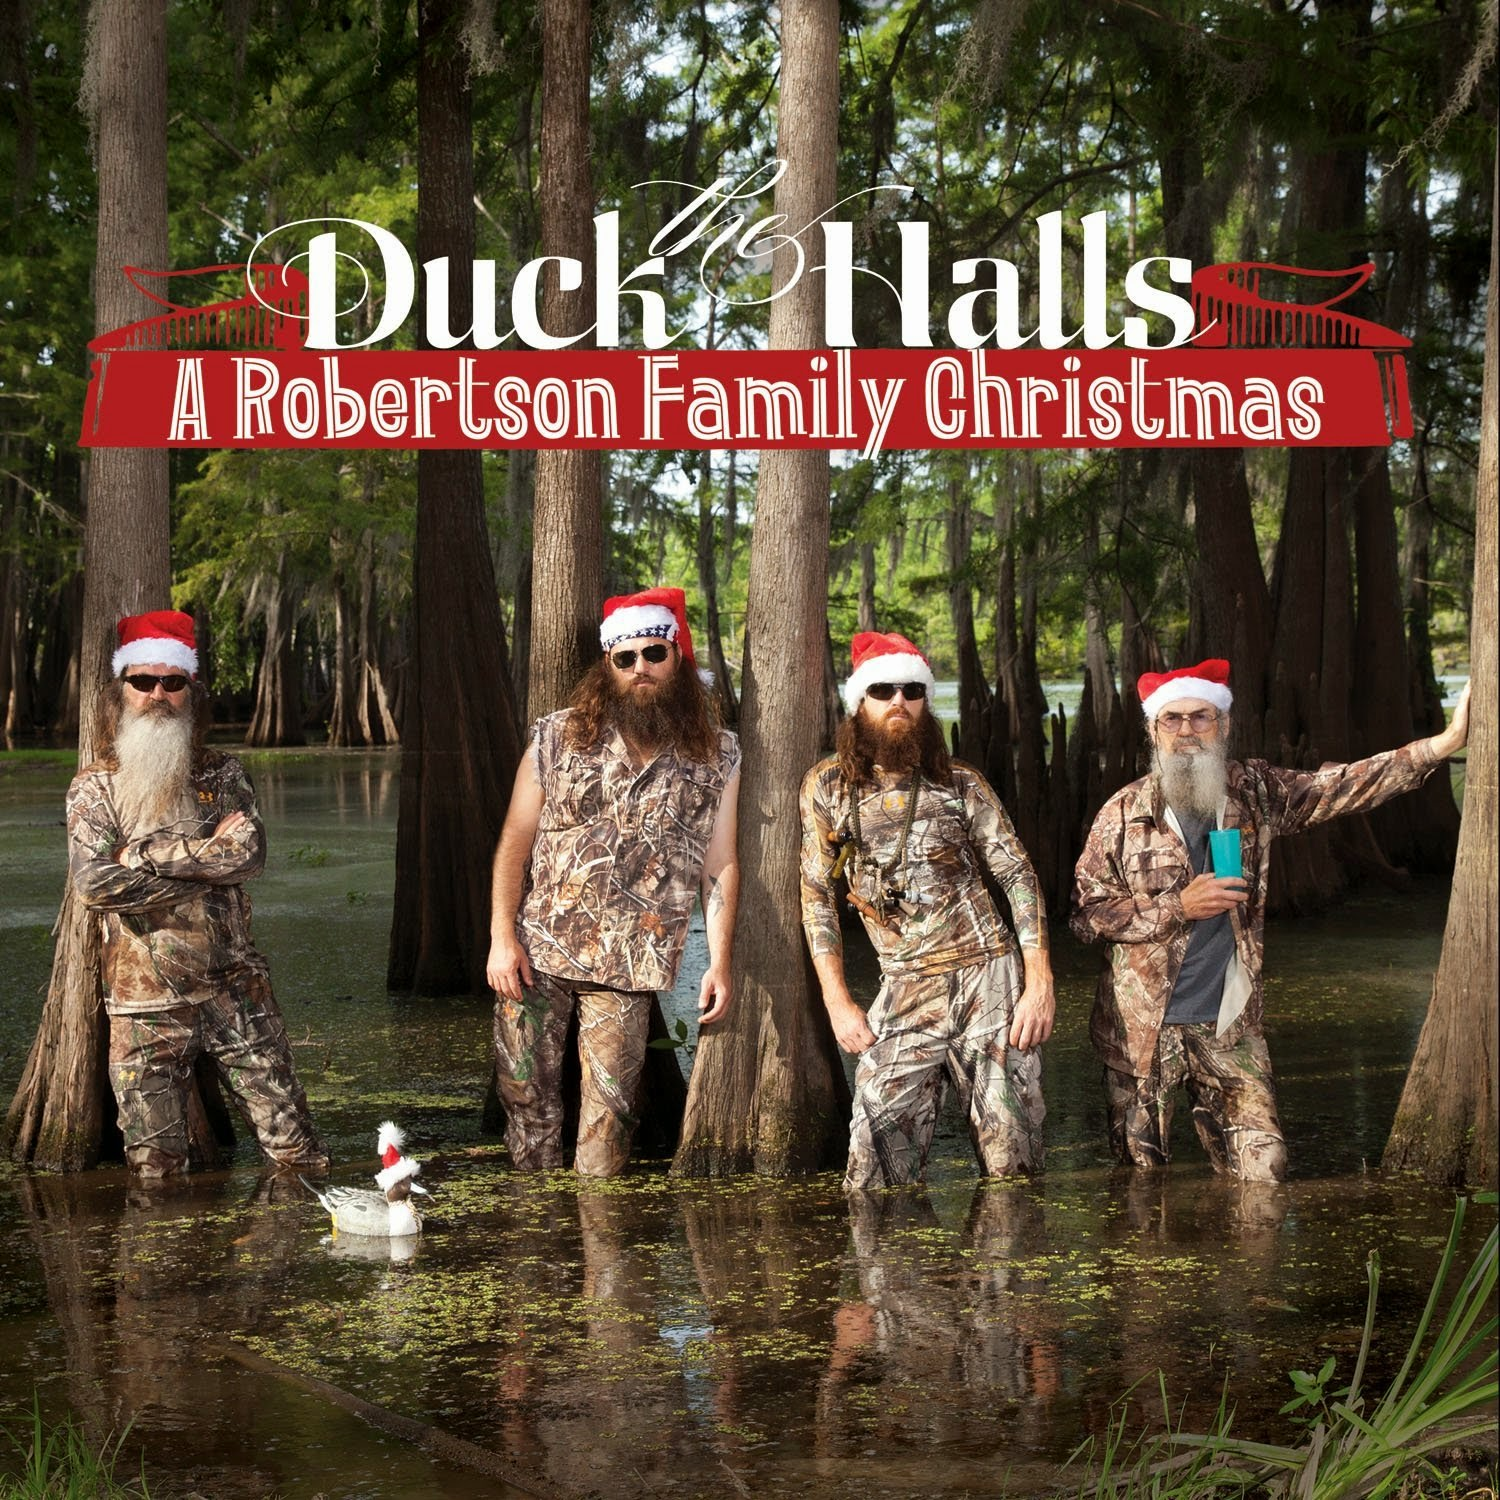 http://discover.halifaxpubliclibraries.ca/?q=title:duck%20dynasty%20halls